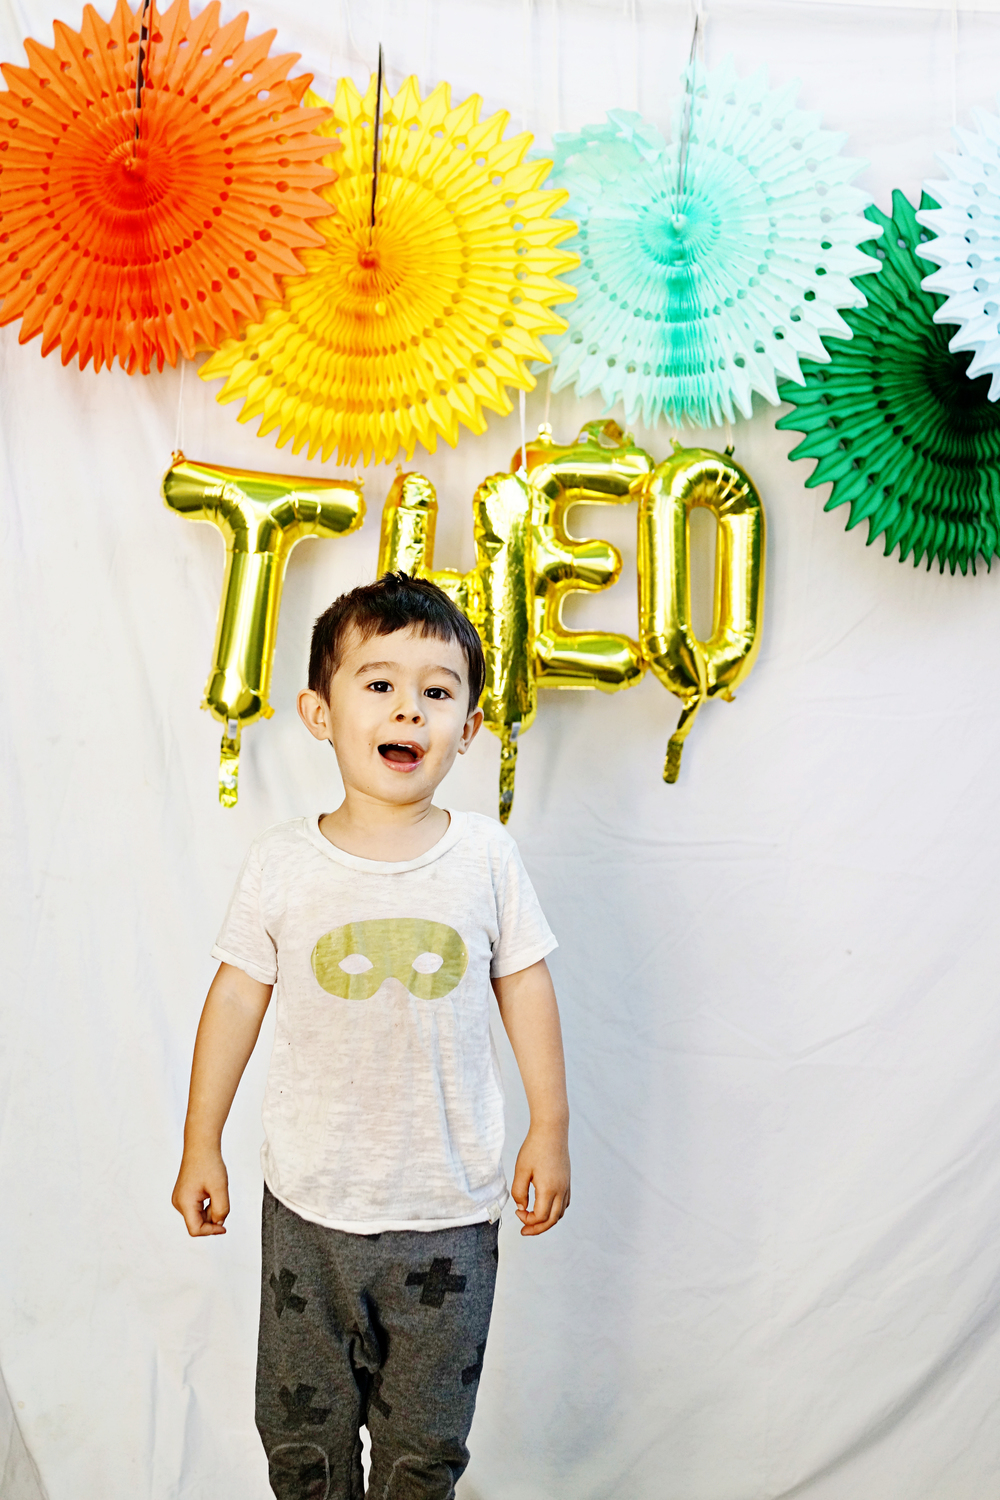 Theo's Music Themed 3rd Birthday Party  /  www.goodonpaperdesign.com/blog  /  @good_on_paper